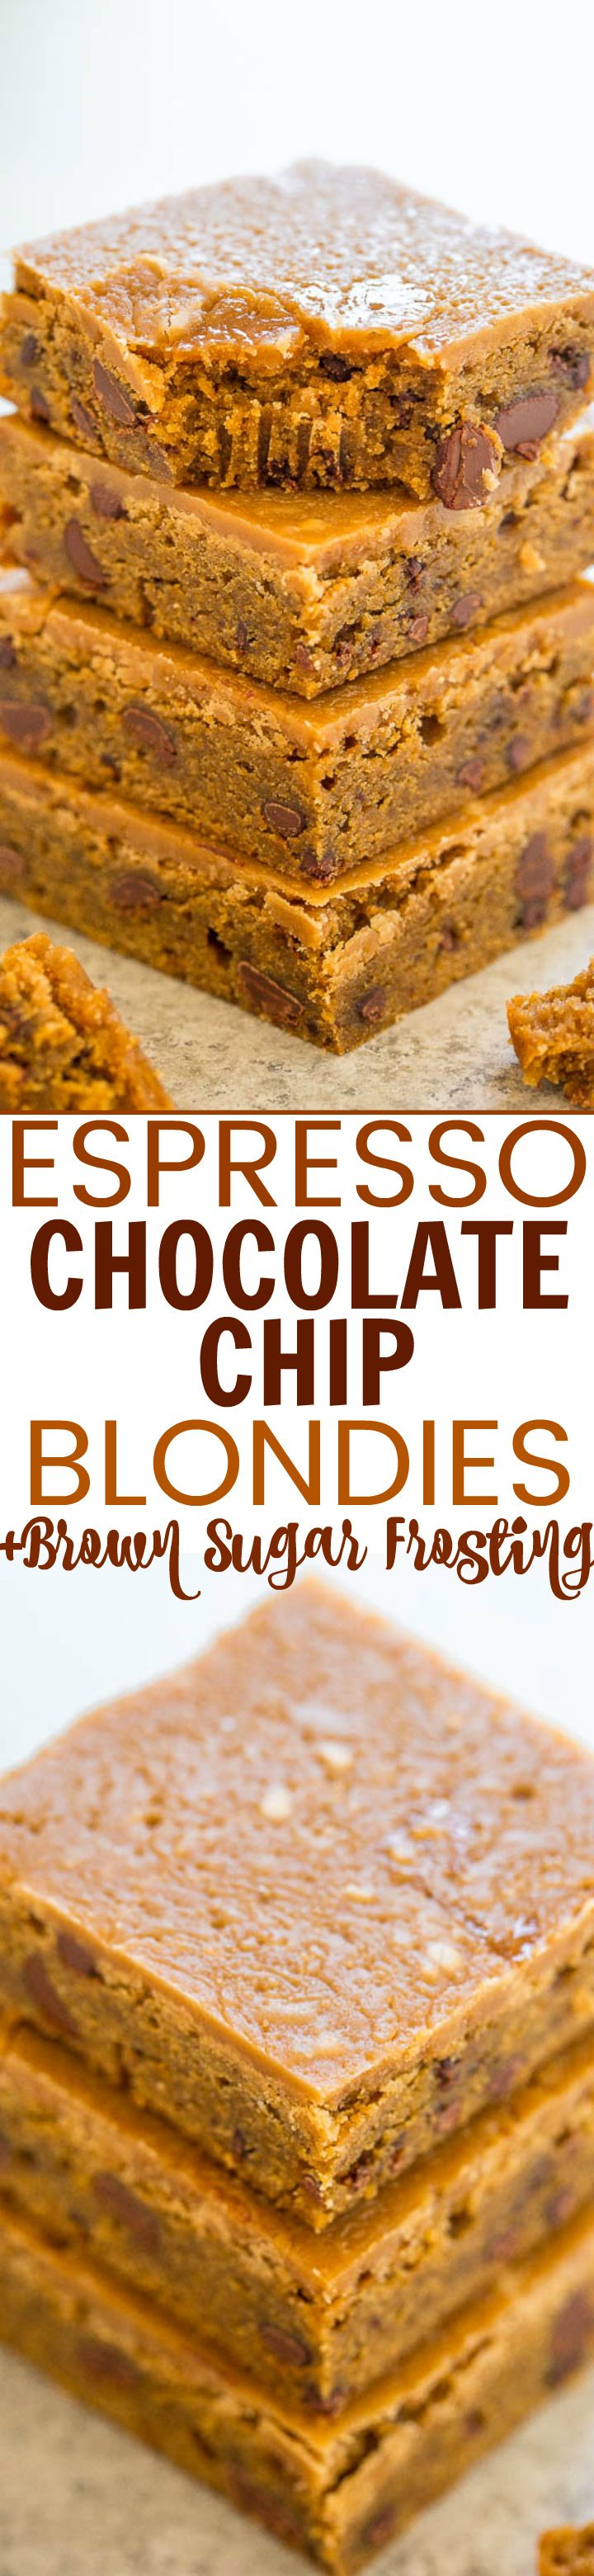 Espresso Chocolate Chip Blondies with Brown Sugar Frosting - EASY, chewy, super SOFT blondies infused with espresso and chocolate!! ENJOY your espresso in dessert form from now on! The brown sugar frosting is simply AMAZING!!